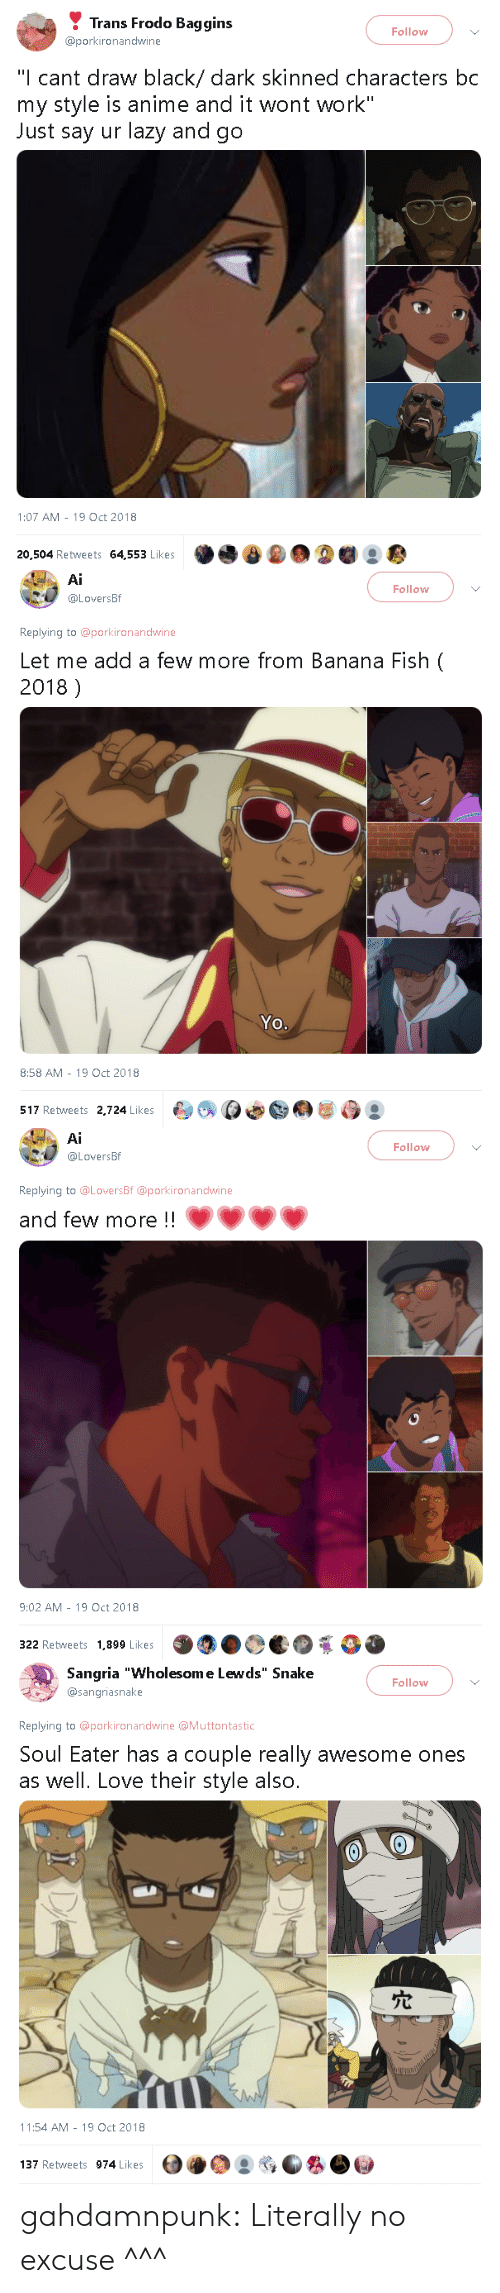 "frodo: Trans Frodo Baggins  @porkironandwine  Follow  ""I cant draw black/ dark skinned characters bc  my style is anime and it wont work""  Just say ur lazy and go  1:07 AM-19 Oct 2018  20,504 Retweets 64,553 Likes   Ai  @LoversBf  Follow  Replying to @porkironandwine  Let me add a few more from Banana Fish (  2018)  Yo.  8:58 AM -19 Oct 2018  517 Retweets 2,724 Likes  臼여 ρΦ@@屡ら   Ai  Follow  .U @LoversBf  Replying to @LoversBf @porkironandwine  and few more !!  9:02 AM-19 Oct 2018  322 Retweets 1,899 Likes   Sangria ""Wholesom e Lewds"" Snake  @sangriasnake  Follow  Replying to @porkironandwine @Muttontastic  Soul Eater has a couple really awesome ones  as well. Love their style also.  穴  hi  11:54 AM-19 Oct 2018  137 Retweets 974 Likes gahdamnpunk: Literally no excuse ^^^"